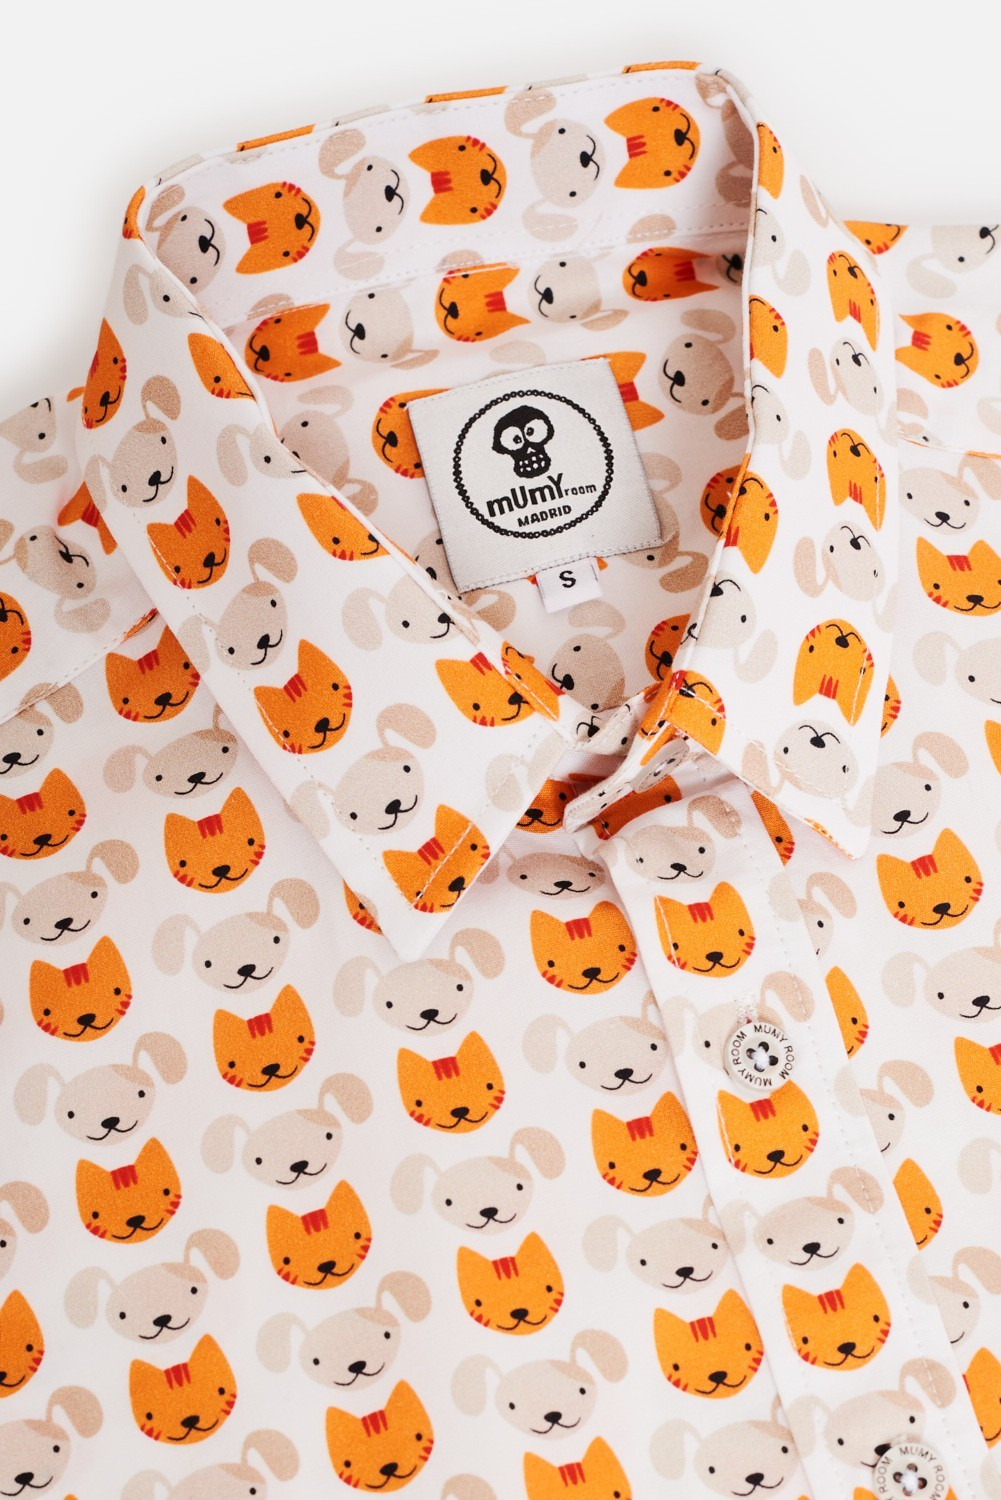 CAMISA ESTAMPADA UMAMI CAT-DOG-CAT